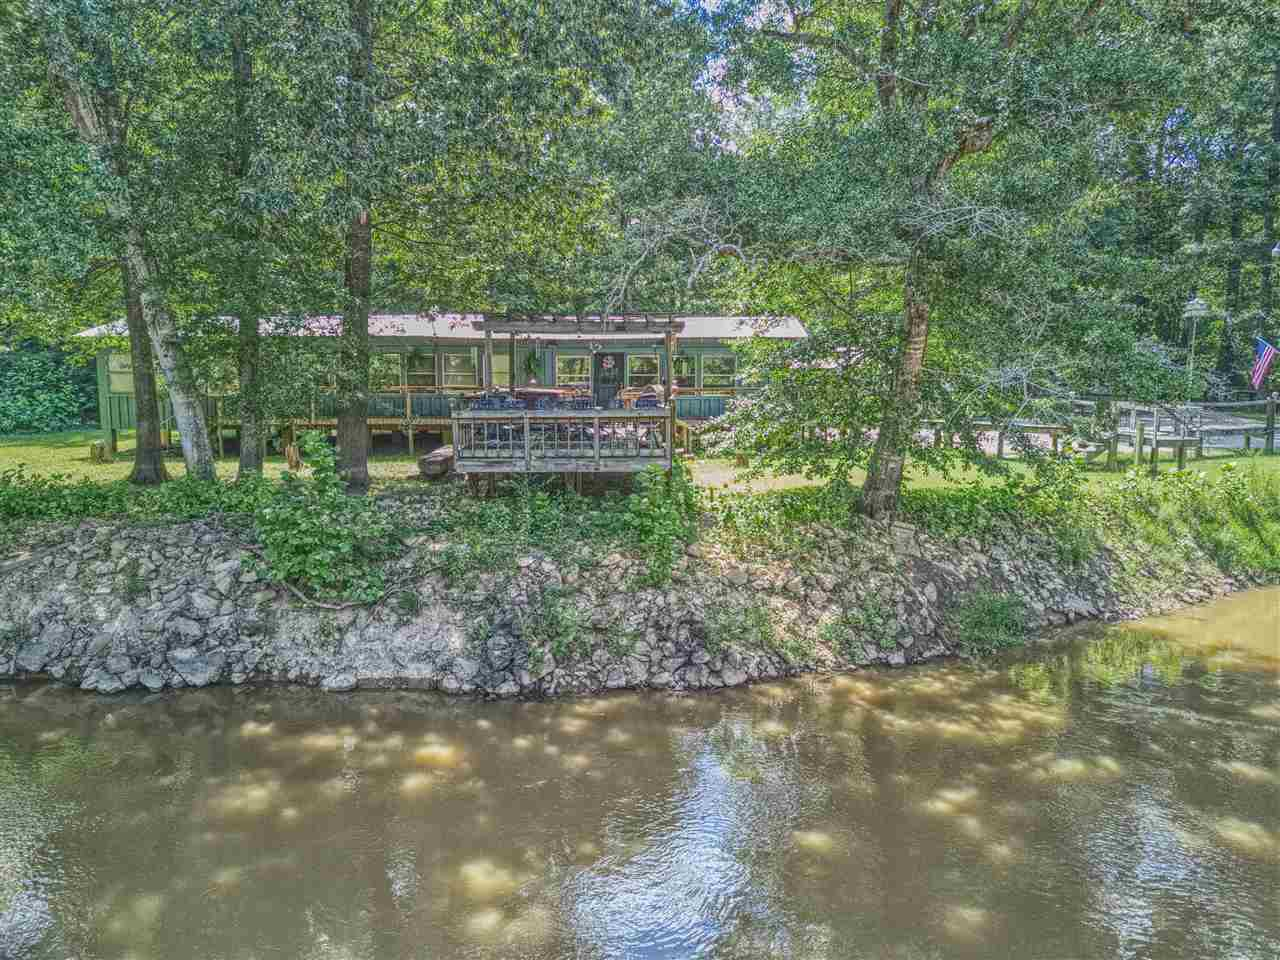 7346 Highway 70 W,Brownsville,Tennessee 38012,2 Bedrooms Bedrooms,2 BathroomsBathrooms,Residential,7346 Highway 70 W,183731